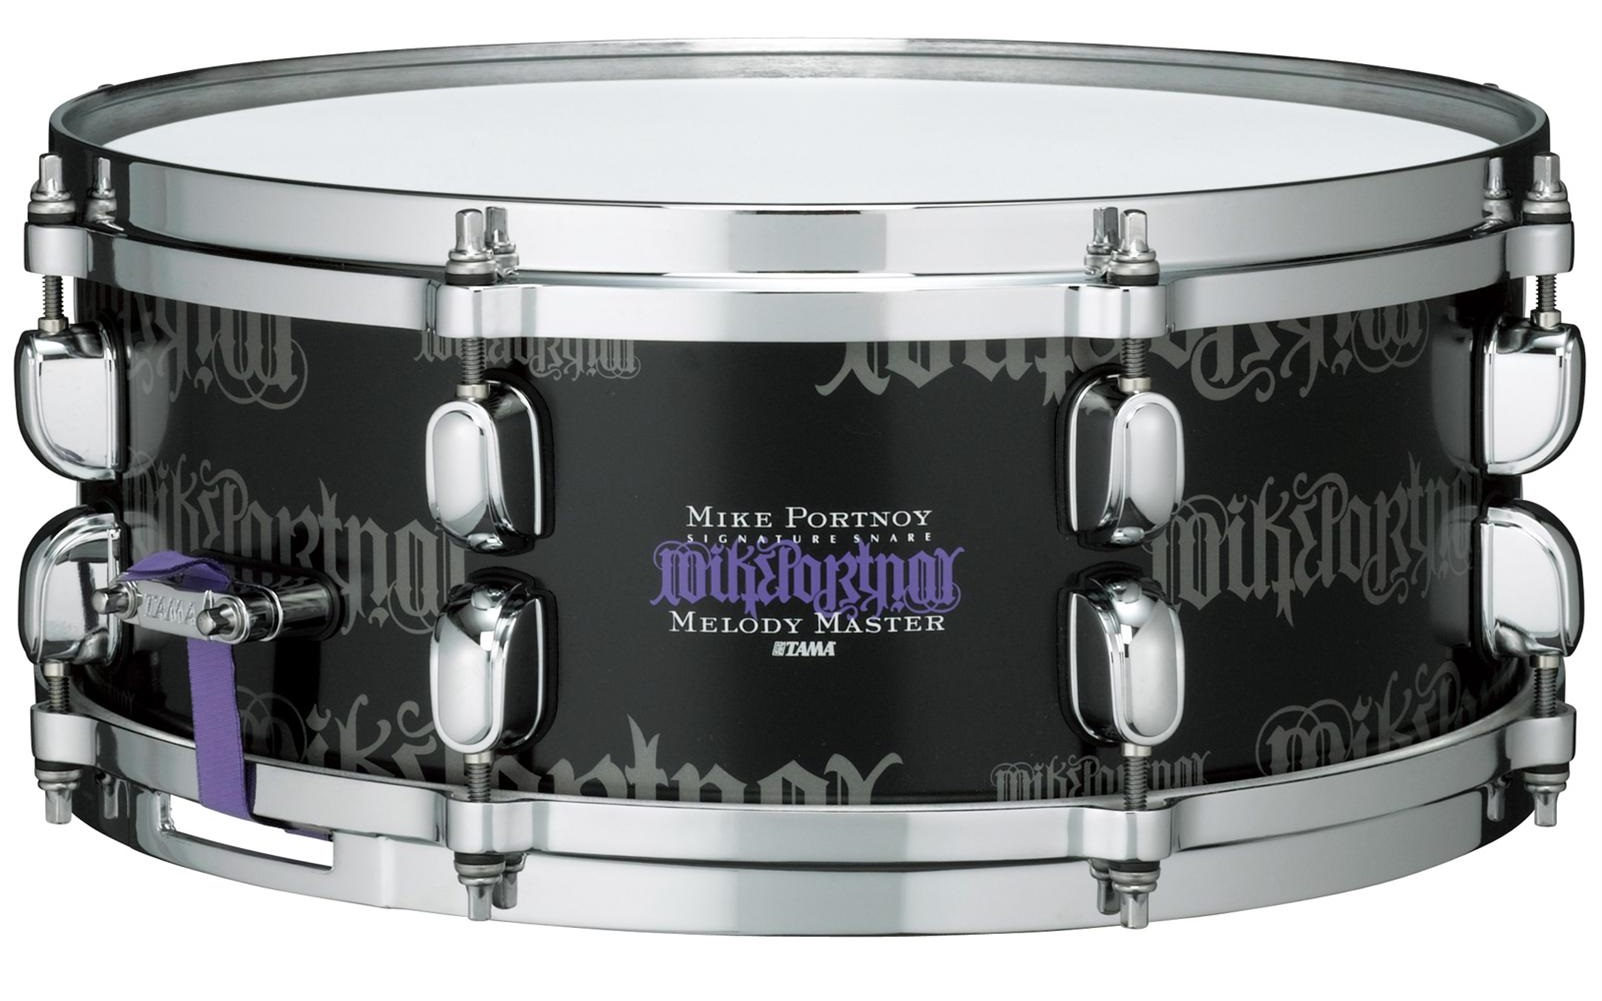 Tama Signature Series Mike Portnoy